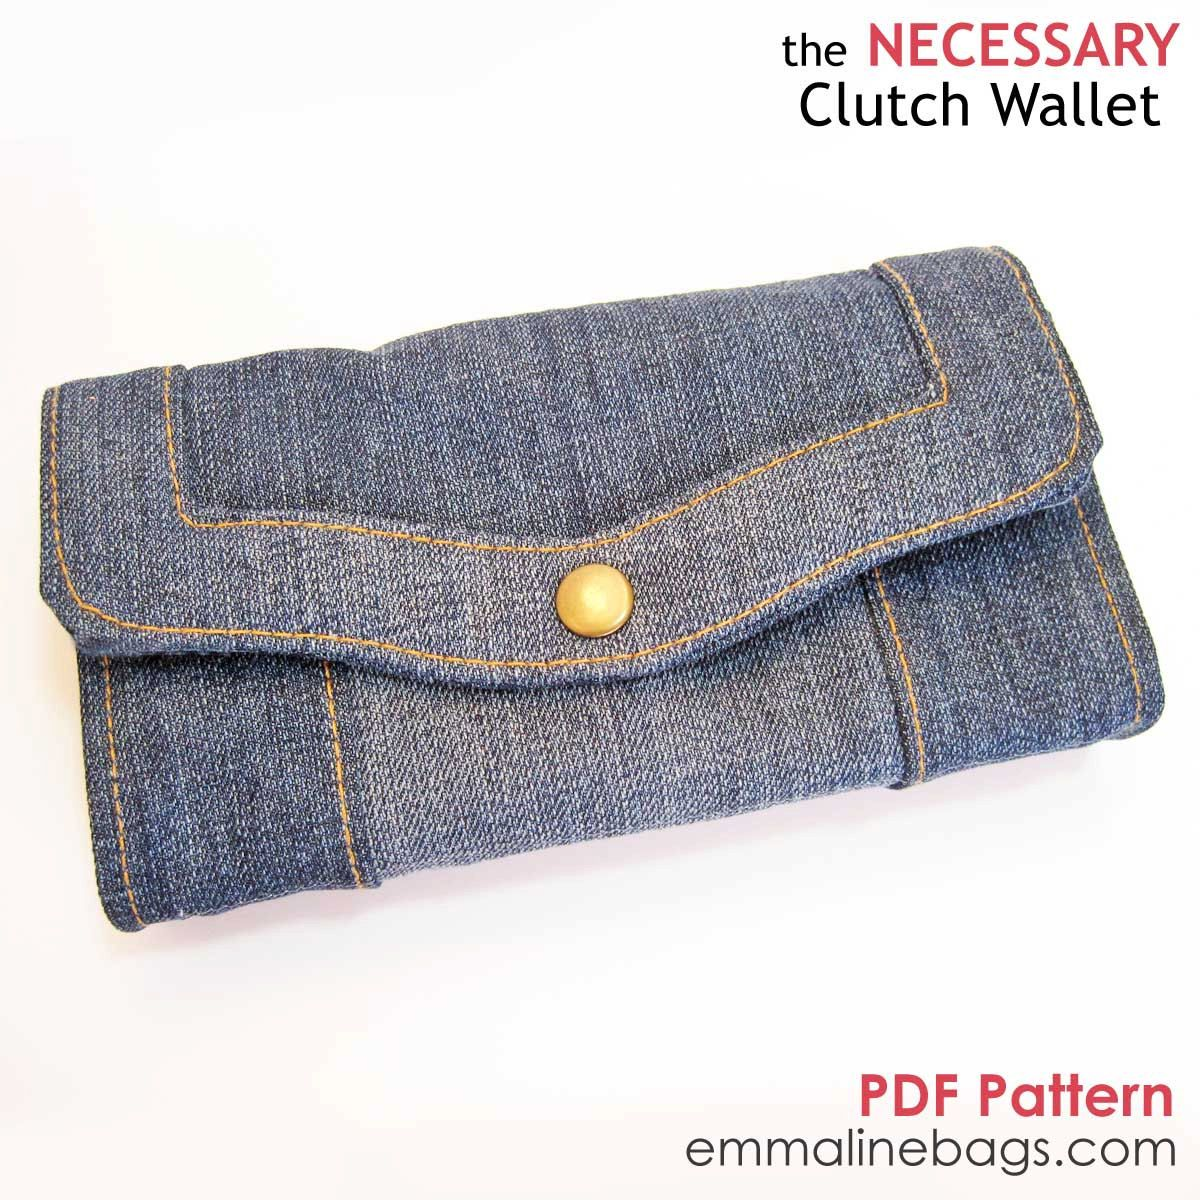 The Necessary Clutch Wallet PDF: A Large wallet with card slots and ...